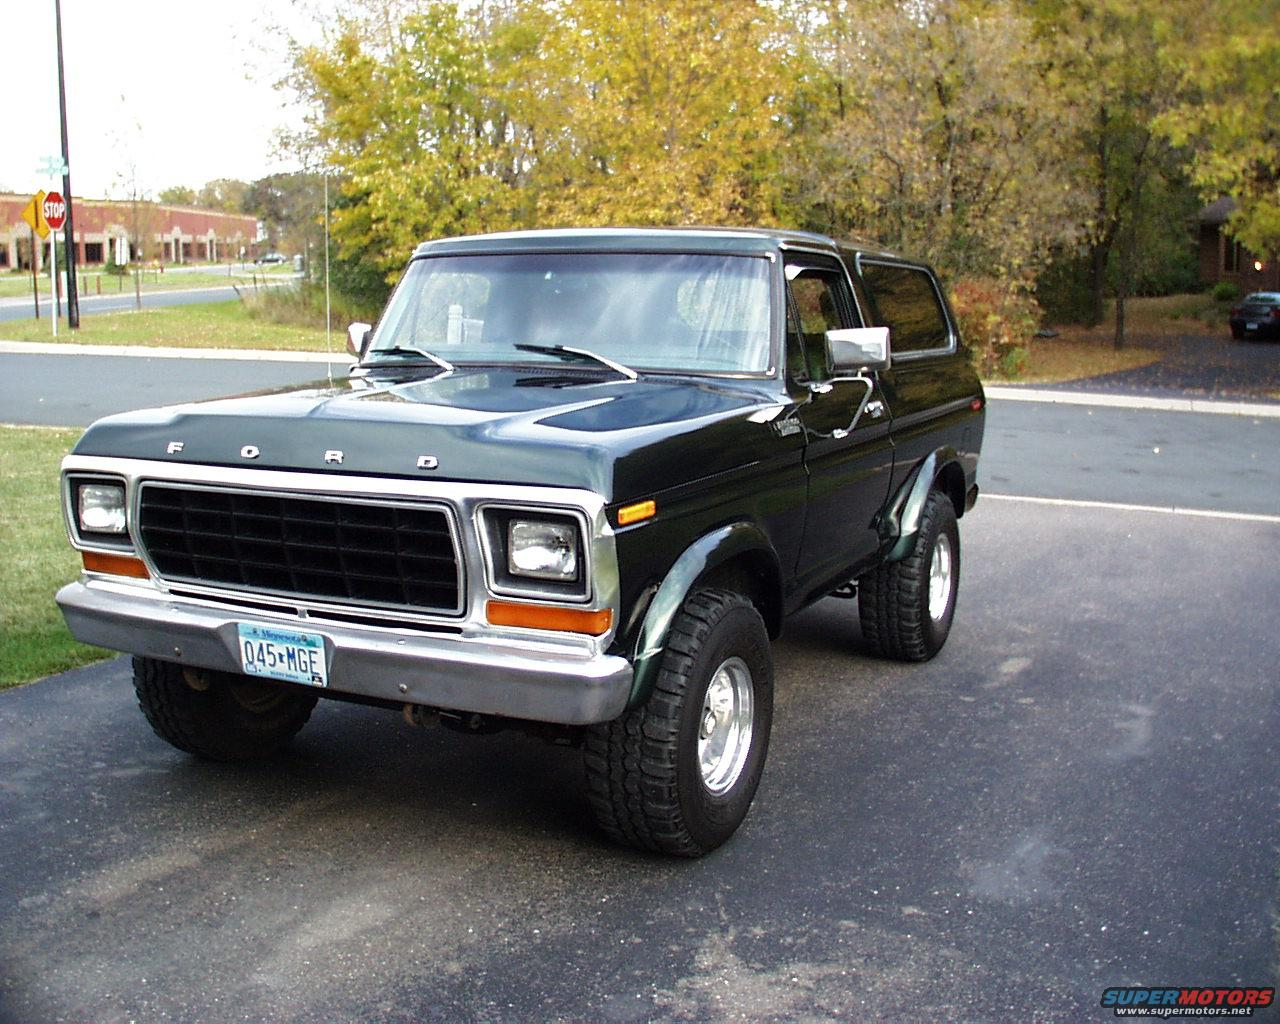 1995 Ford Bronco Michigan 78-79 Broncos picture | SuperMotors.net